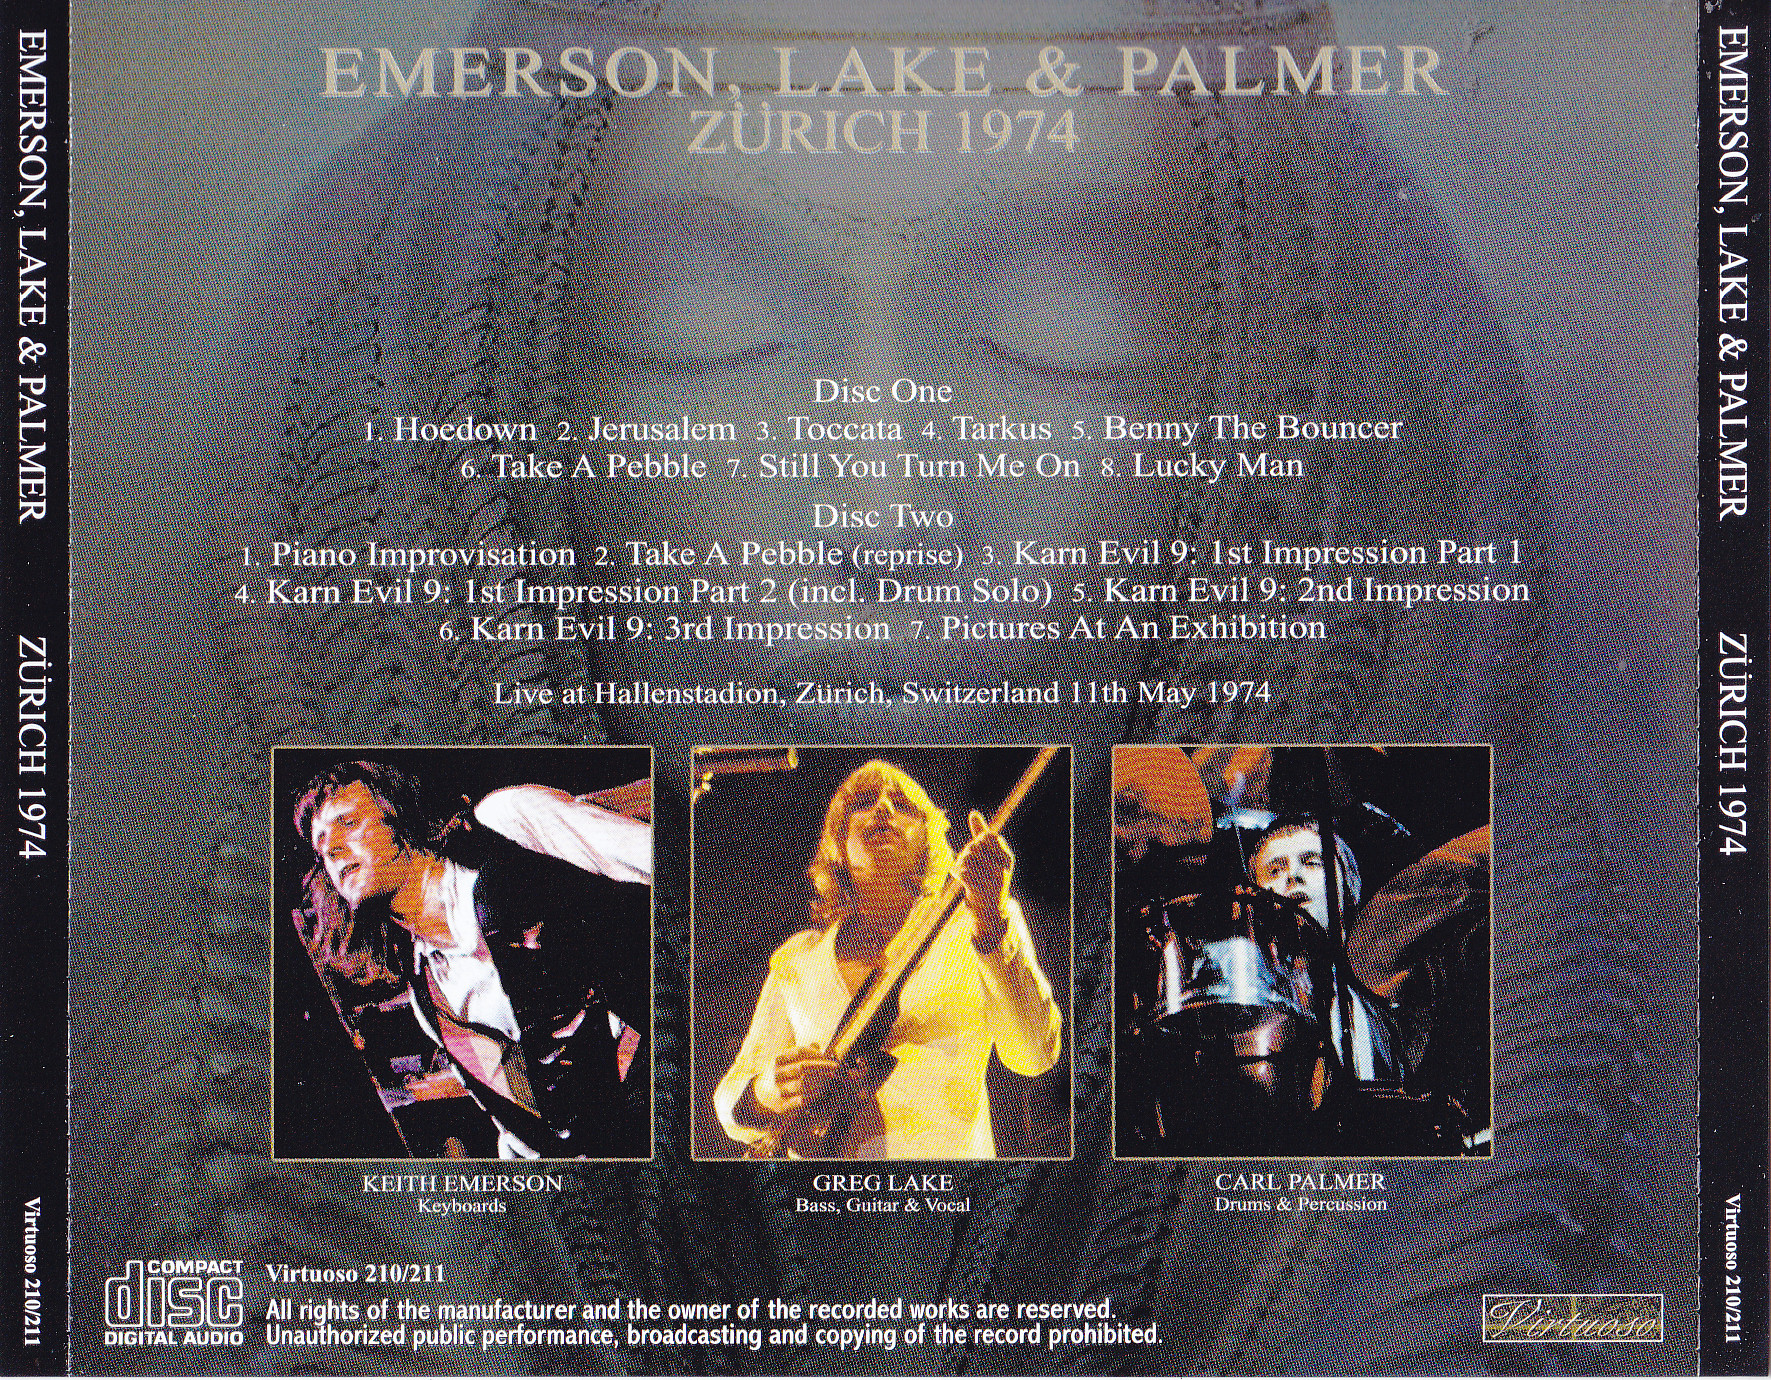 Emerson Lake & Palmer (ELP) - Zurich 1973 (2CD) Virtuoso 208/209